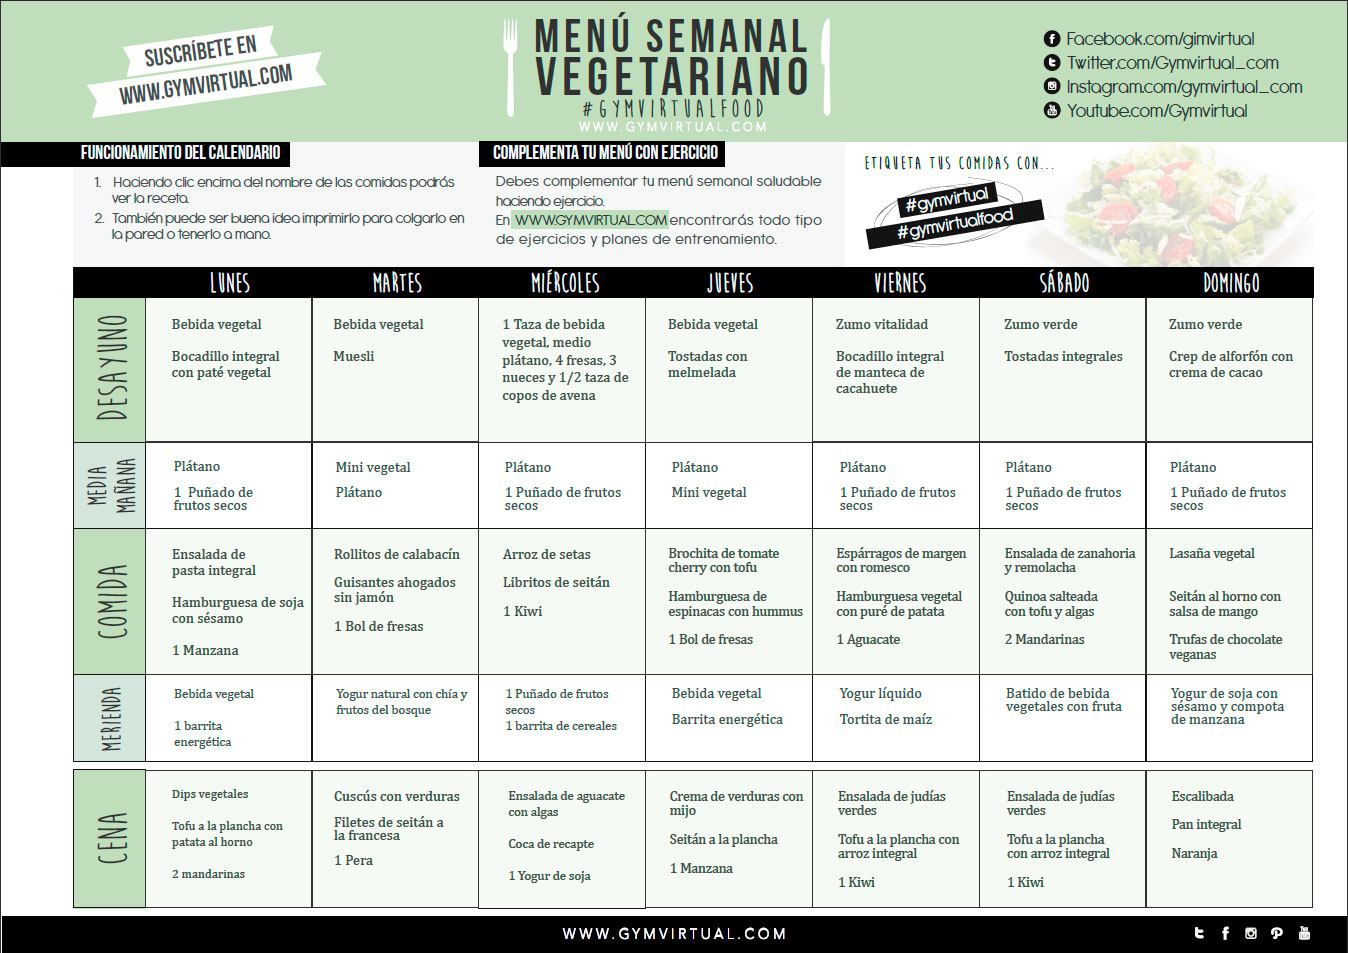 Men vegetariano gym virtual for Menu semanal verano